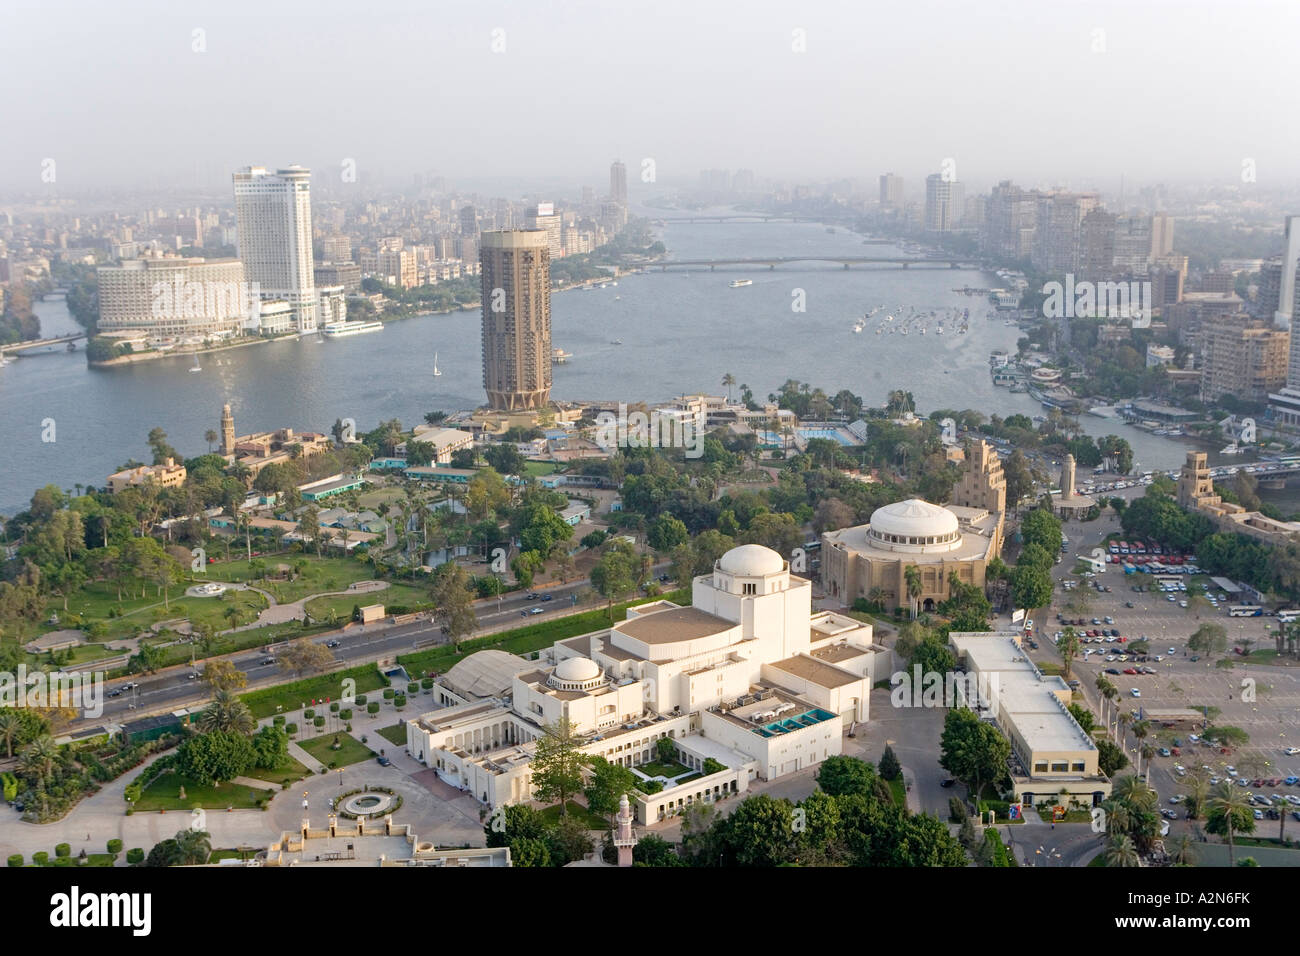 Aerial View Of City Nile River Cairo Egypt Stock Photo